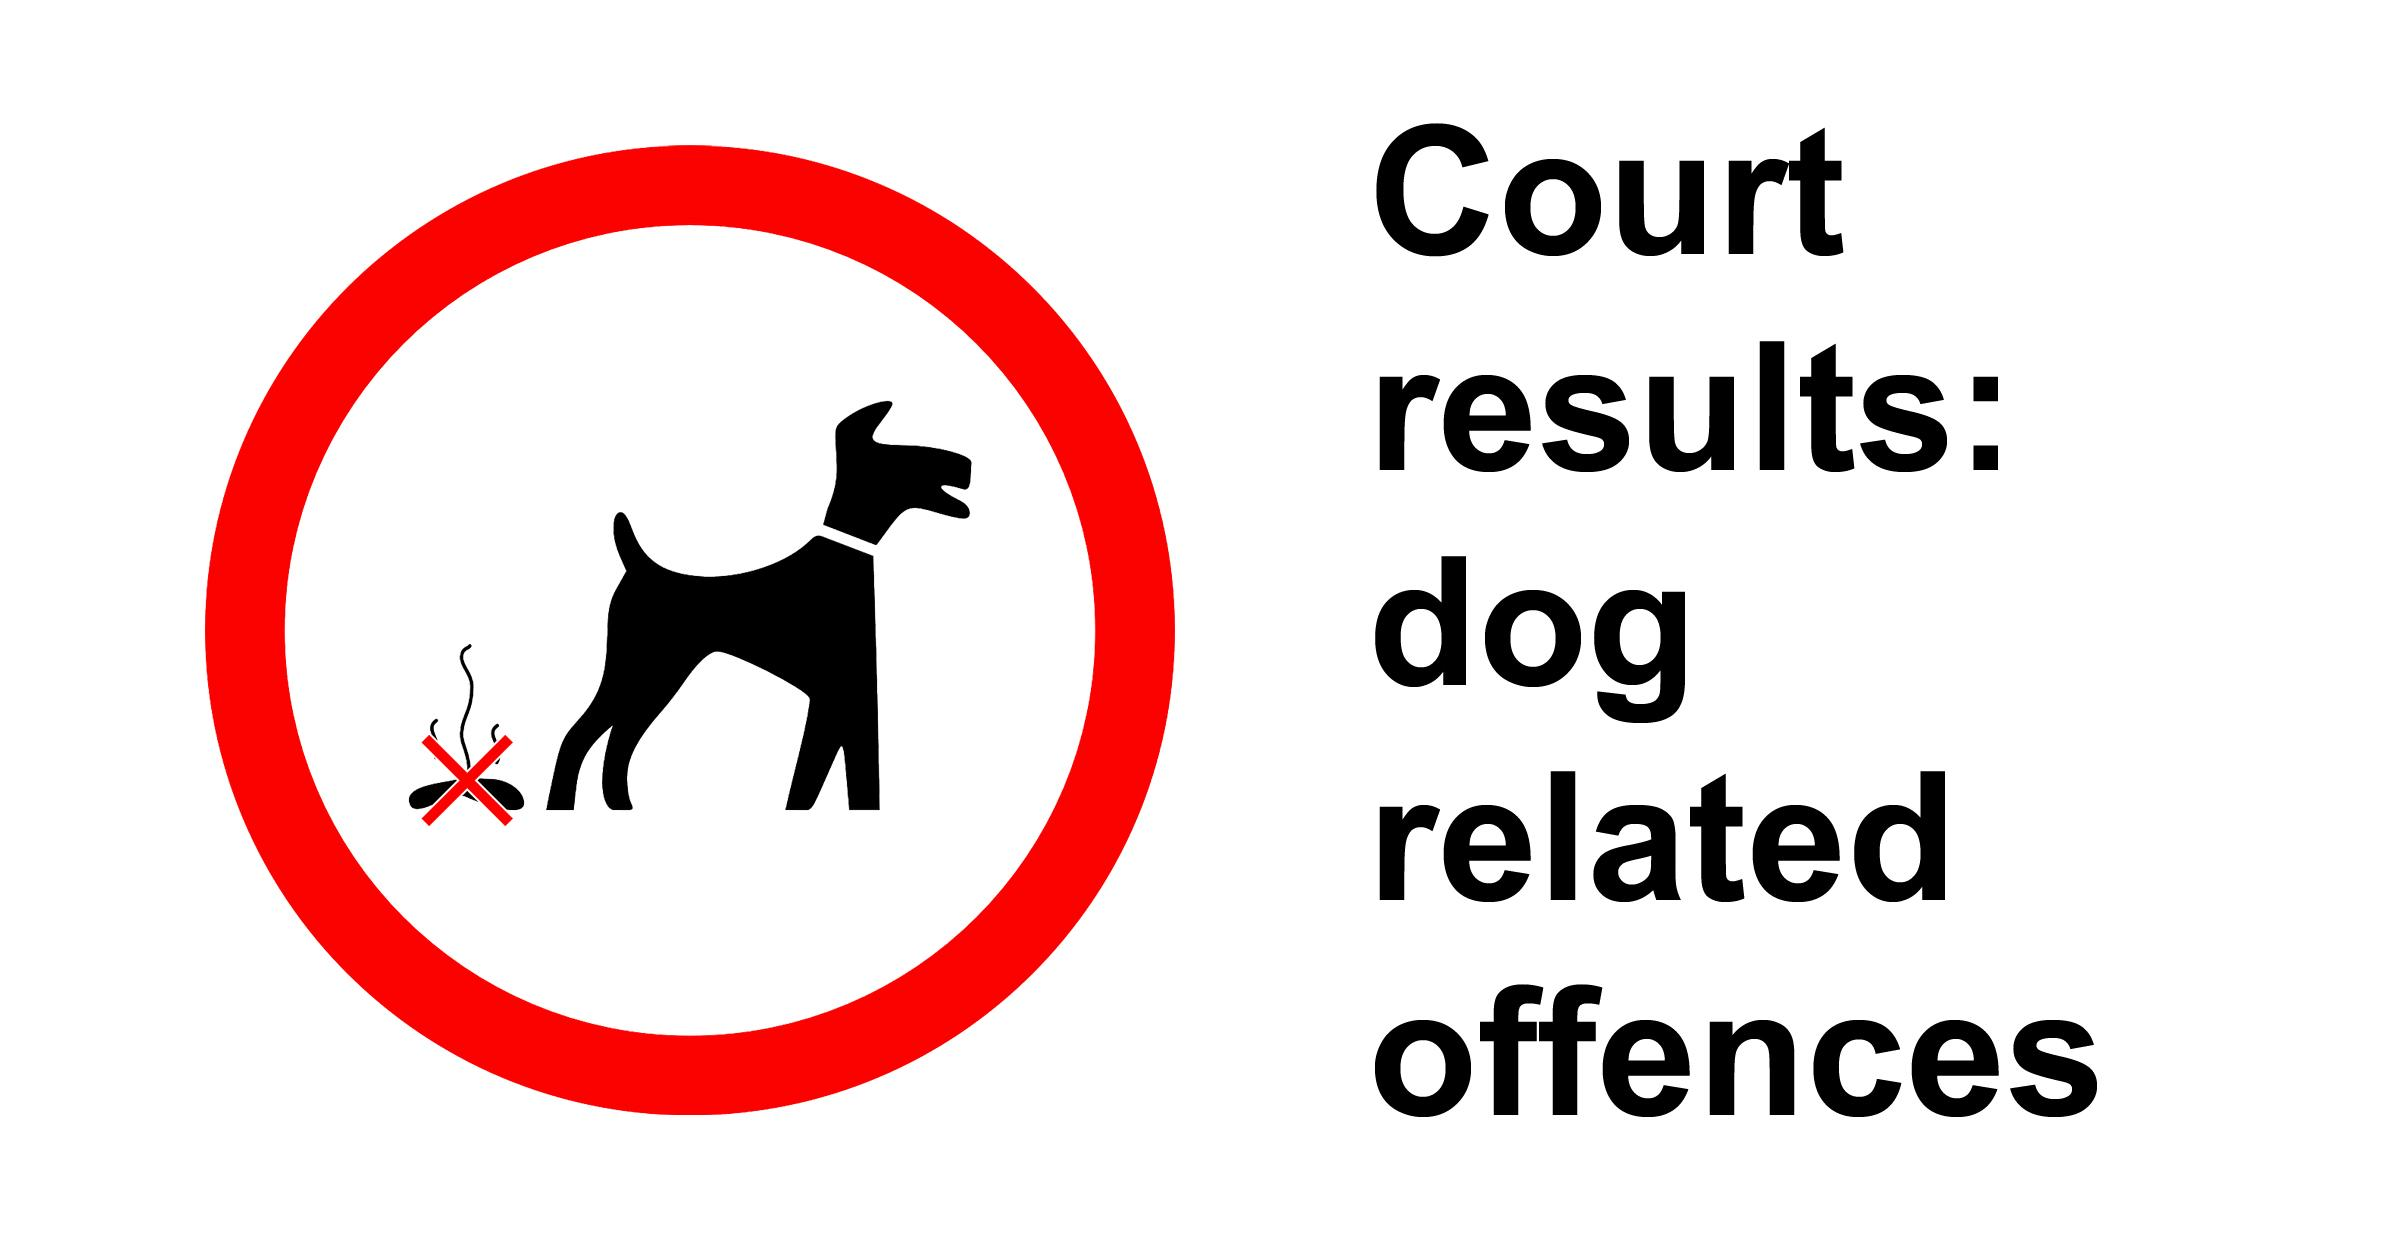 Graphic to illustrate dog related offences